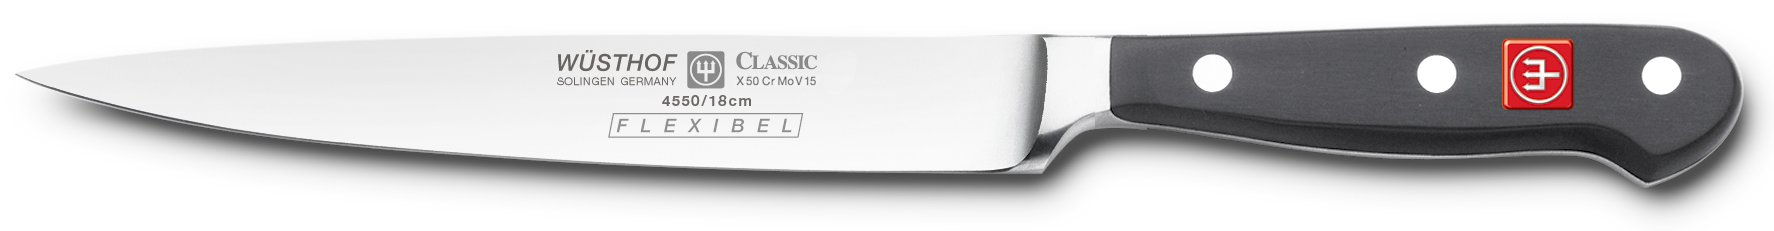 Wusthof Classic Flexible 7 Inch Fillet Knife